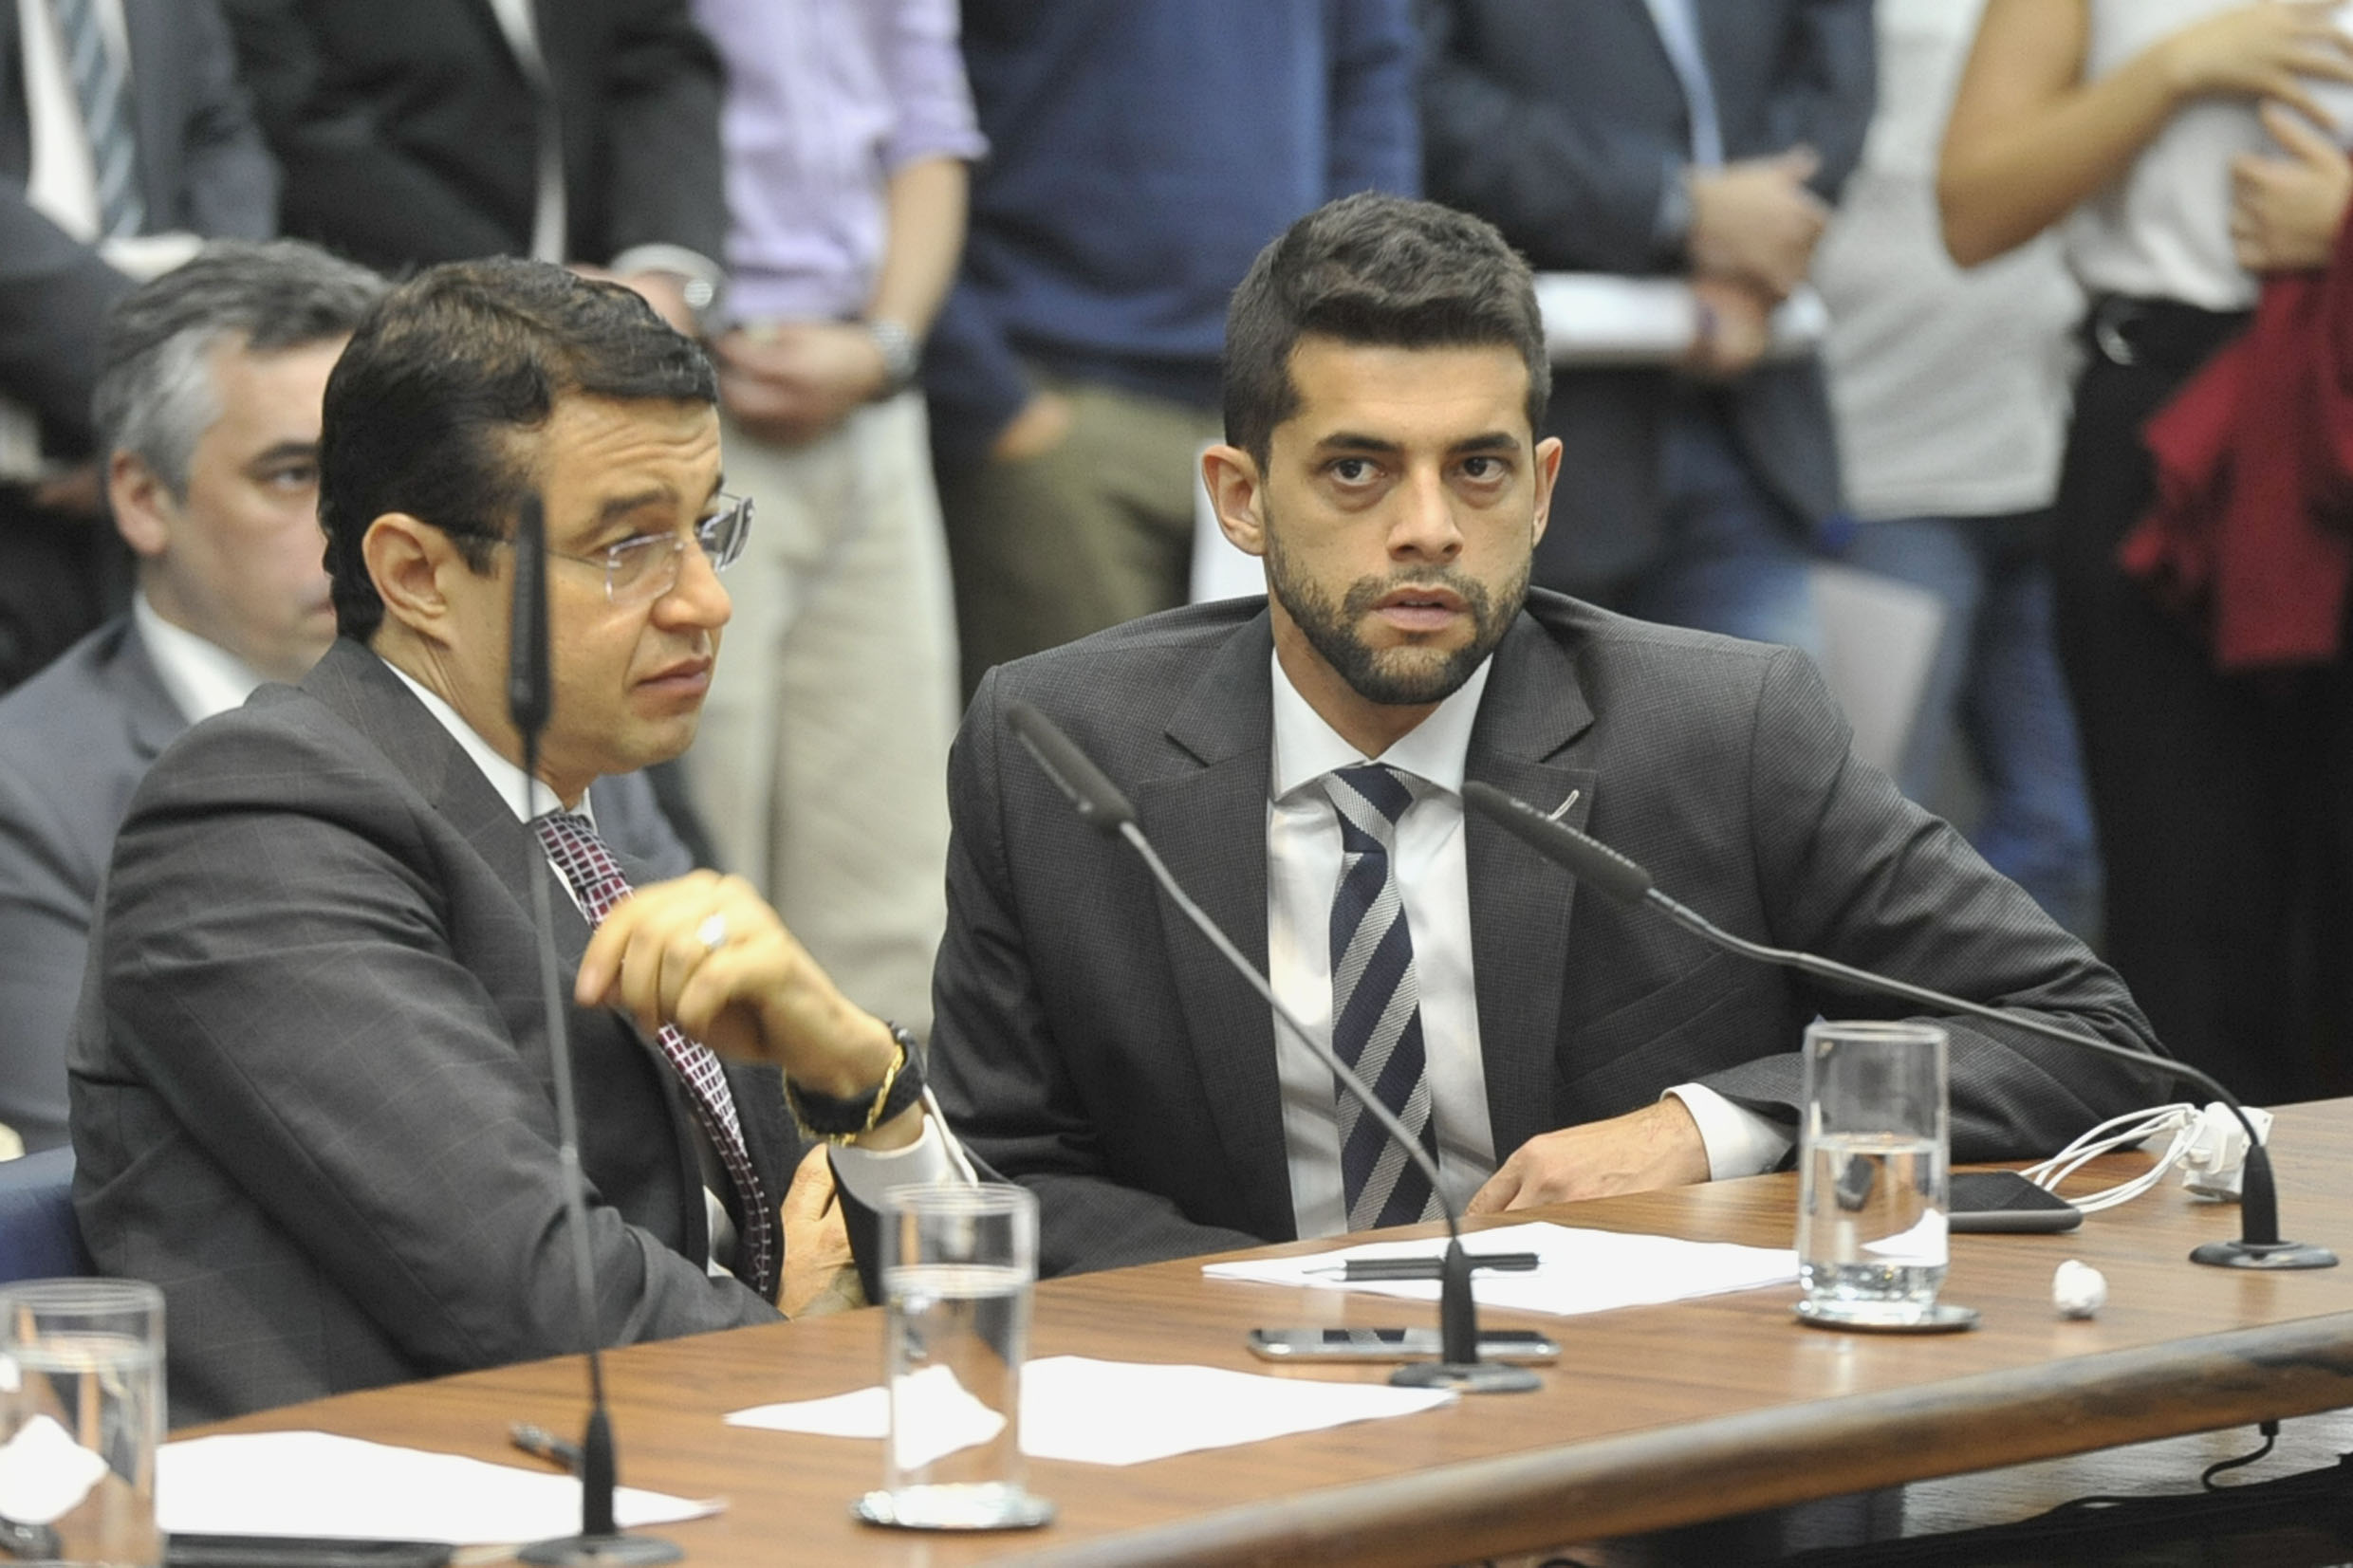 Parlamentares na comissão<a style='float:right' href='https://www3.al.sp.gov.br/repositorio/noticia/N-05-2019/fg234184.jpg' target=_blank><img src='/_img/material-file-download-white.png' width='14px' alt='Clique para baixar a imagem'></a>